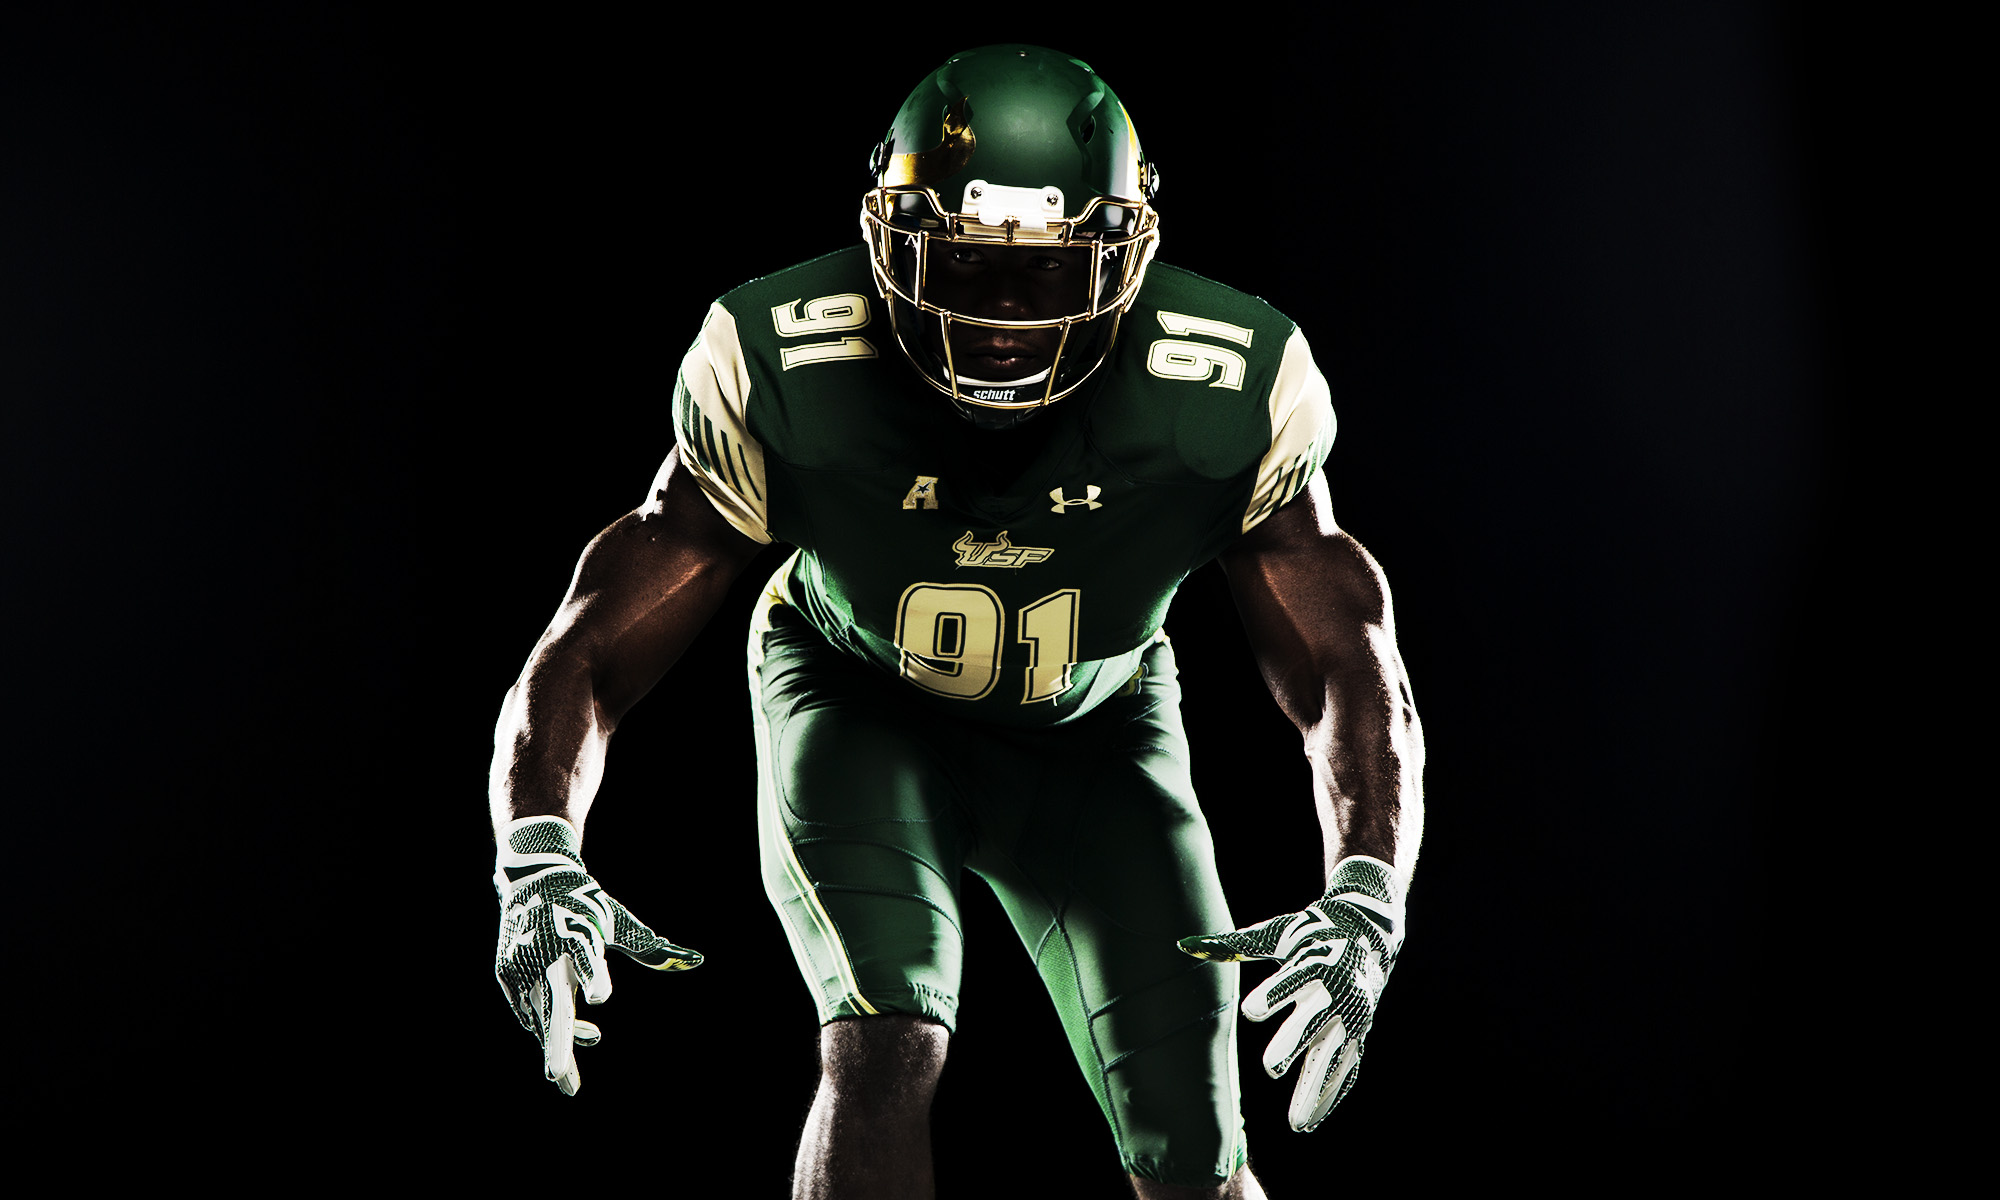 USF-Football-Green-585